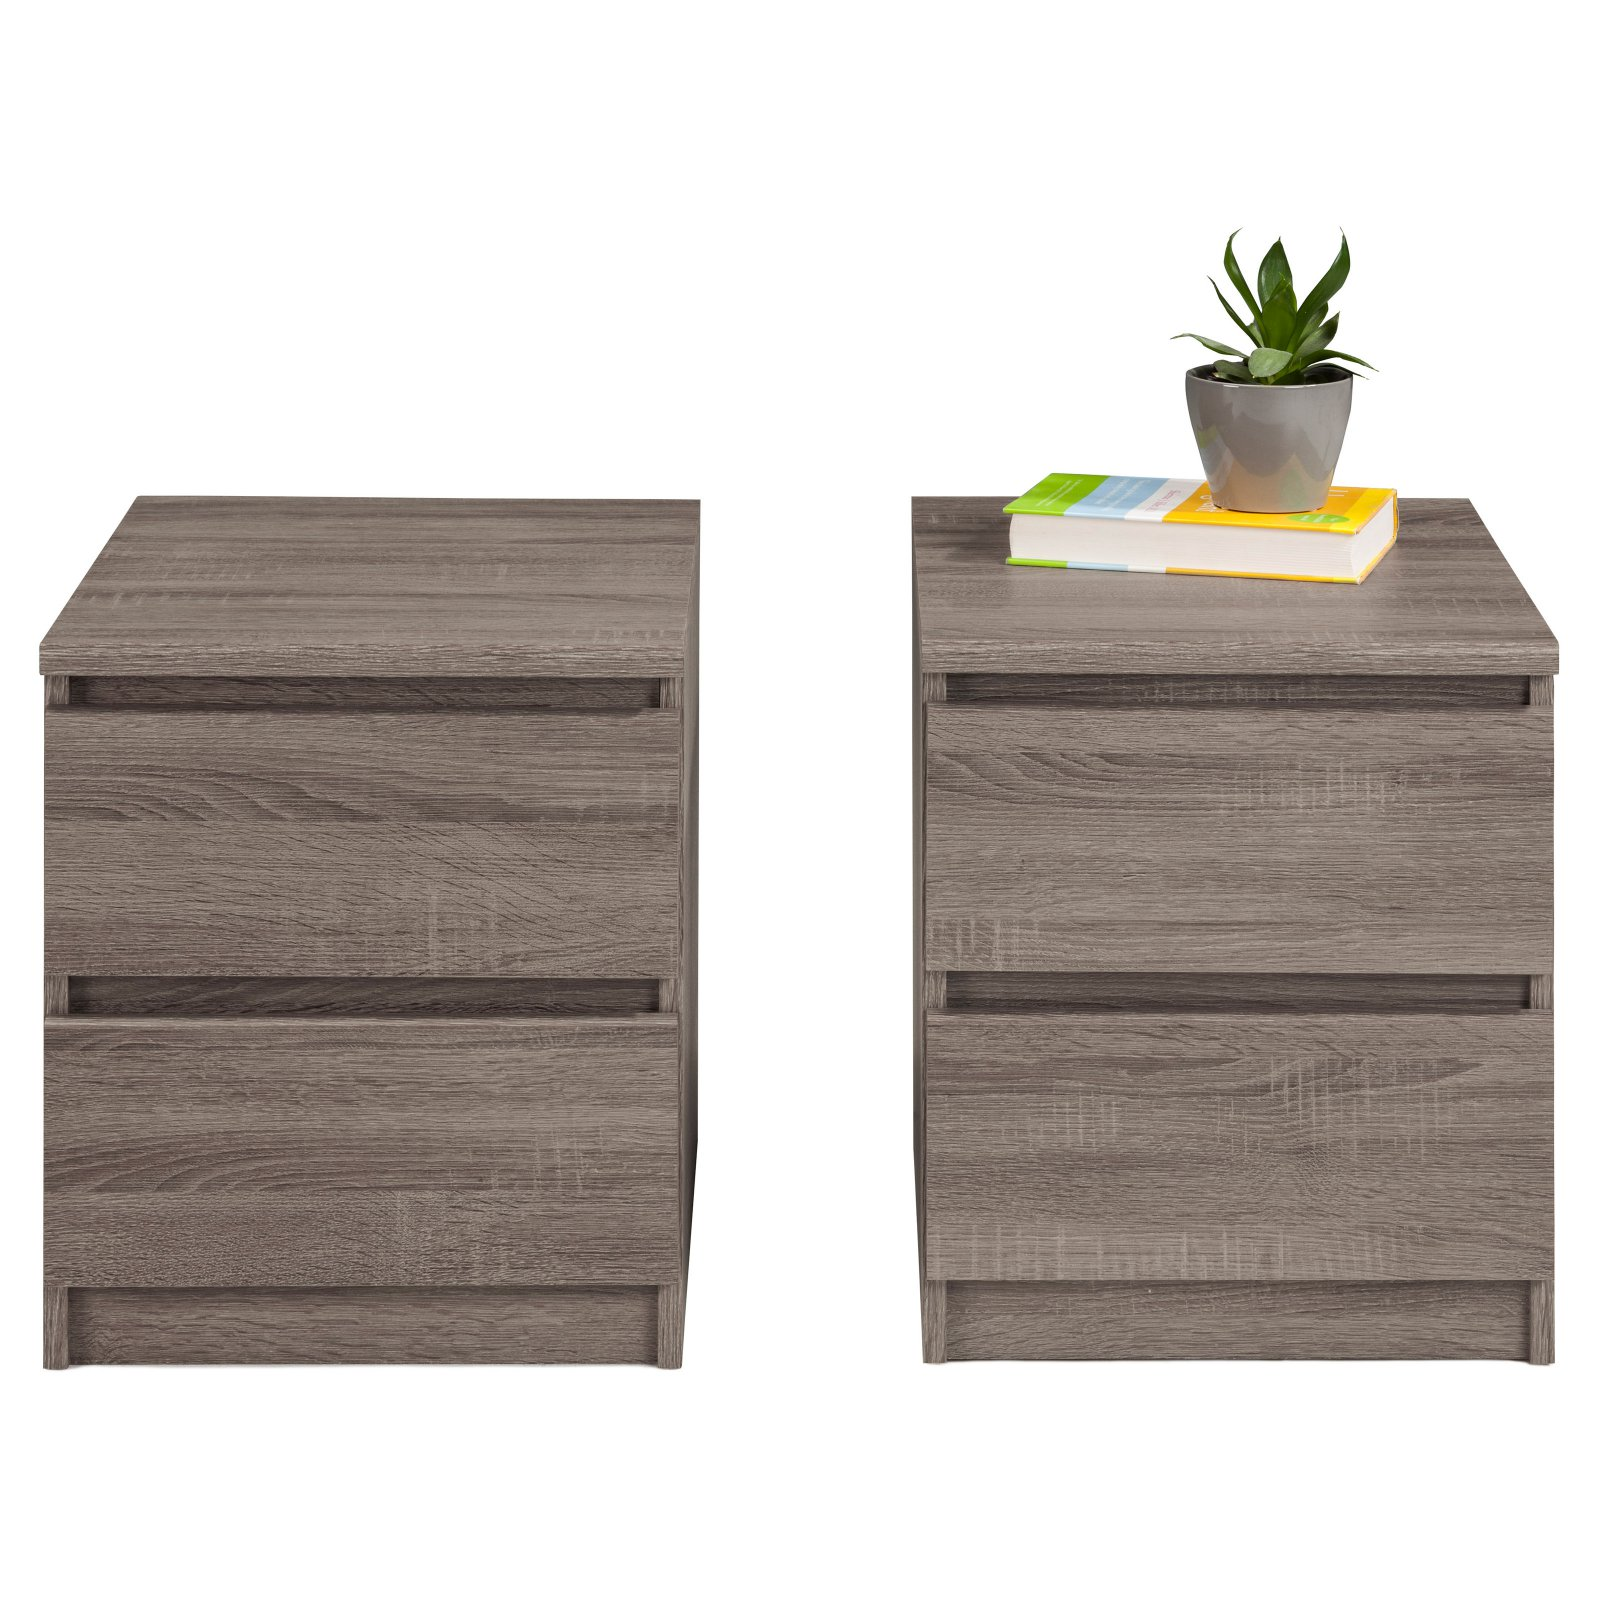 100 average nightstand height what height is right to hang